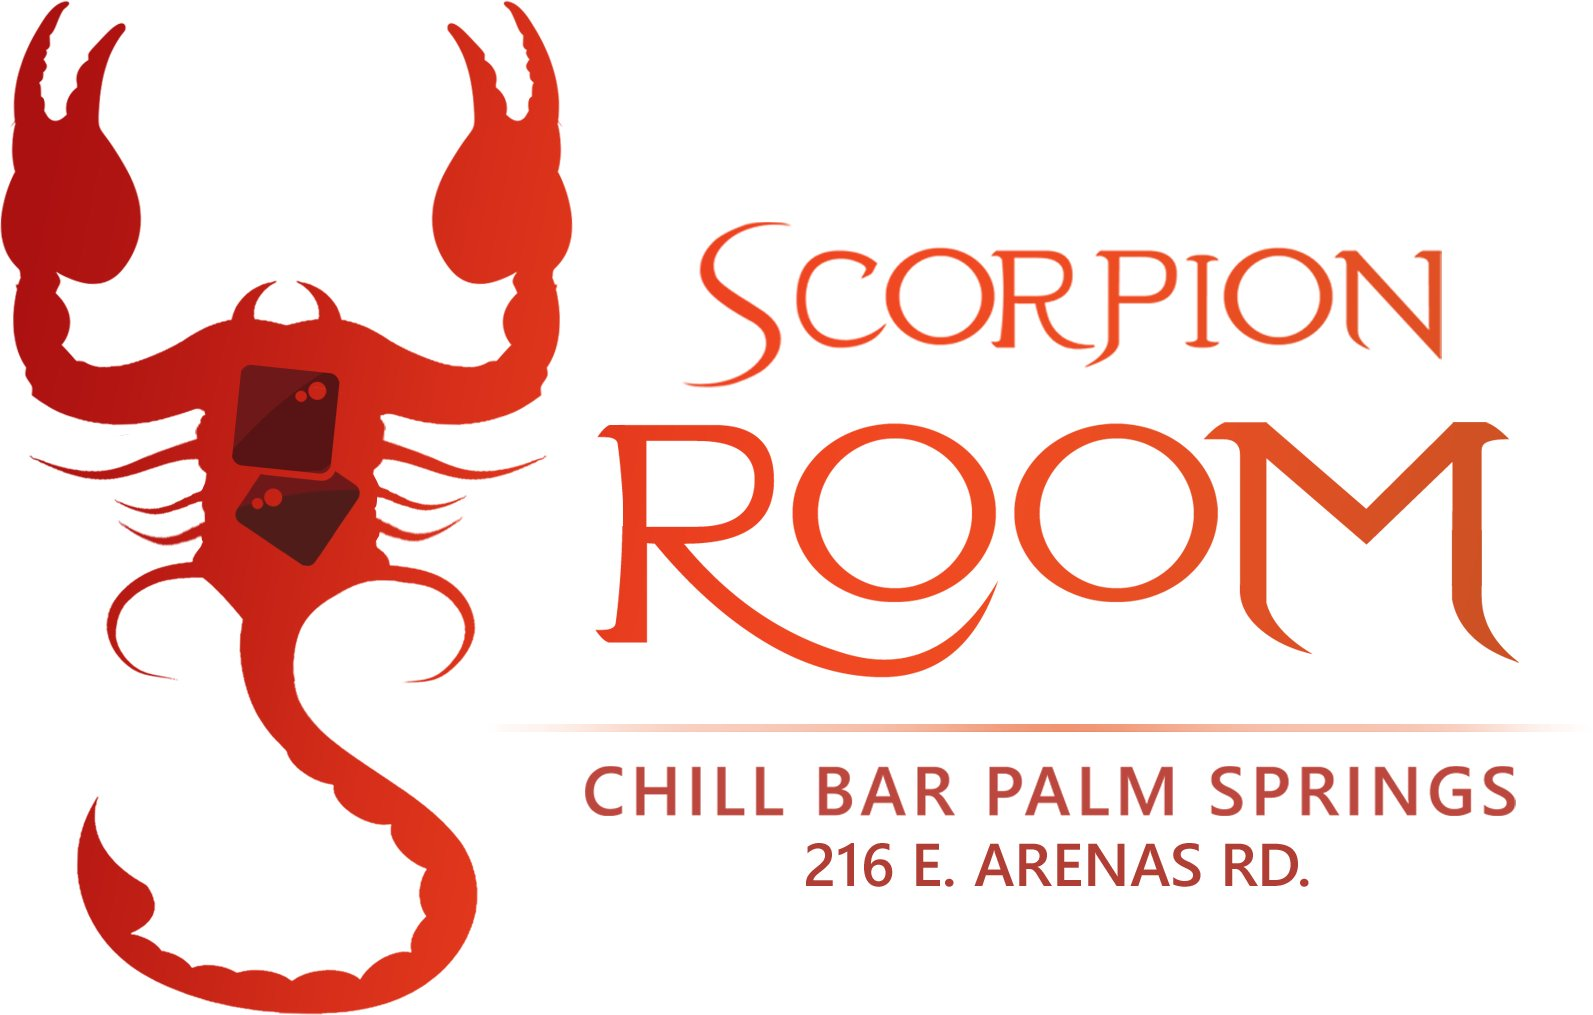 Scorpion Room @ Chill Bar